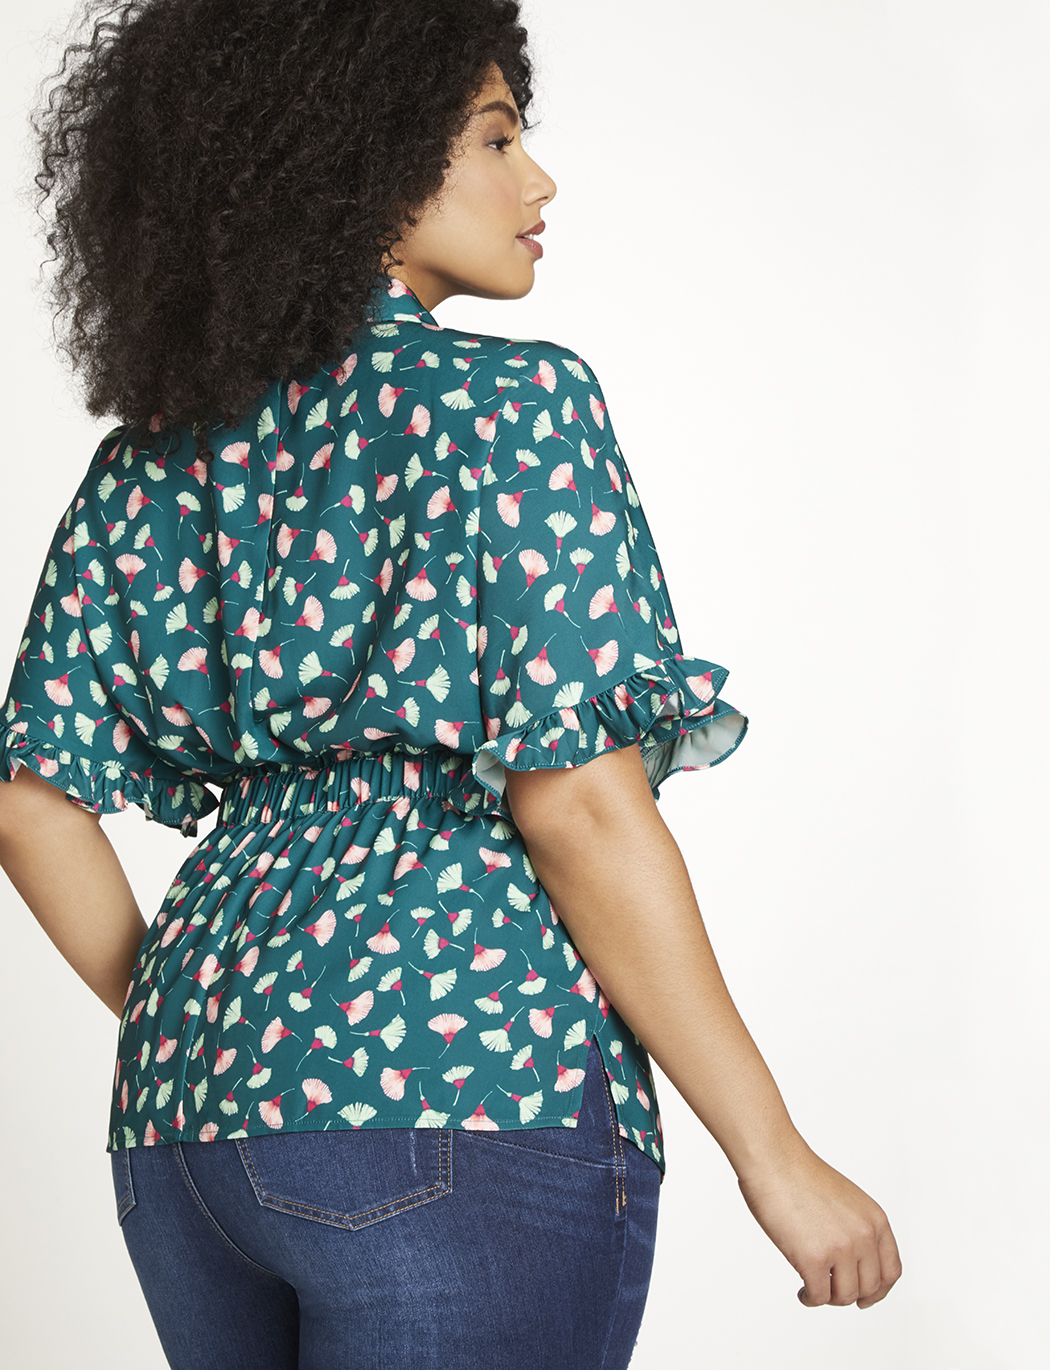 Printed Top with Ruffle Sleeve